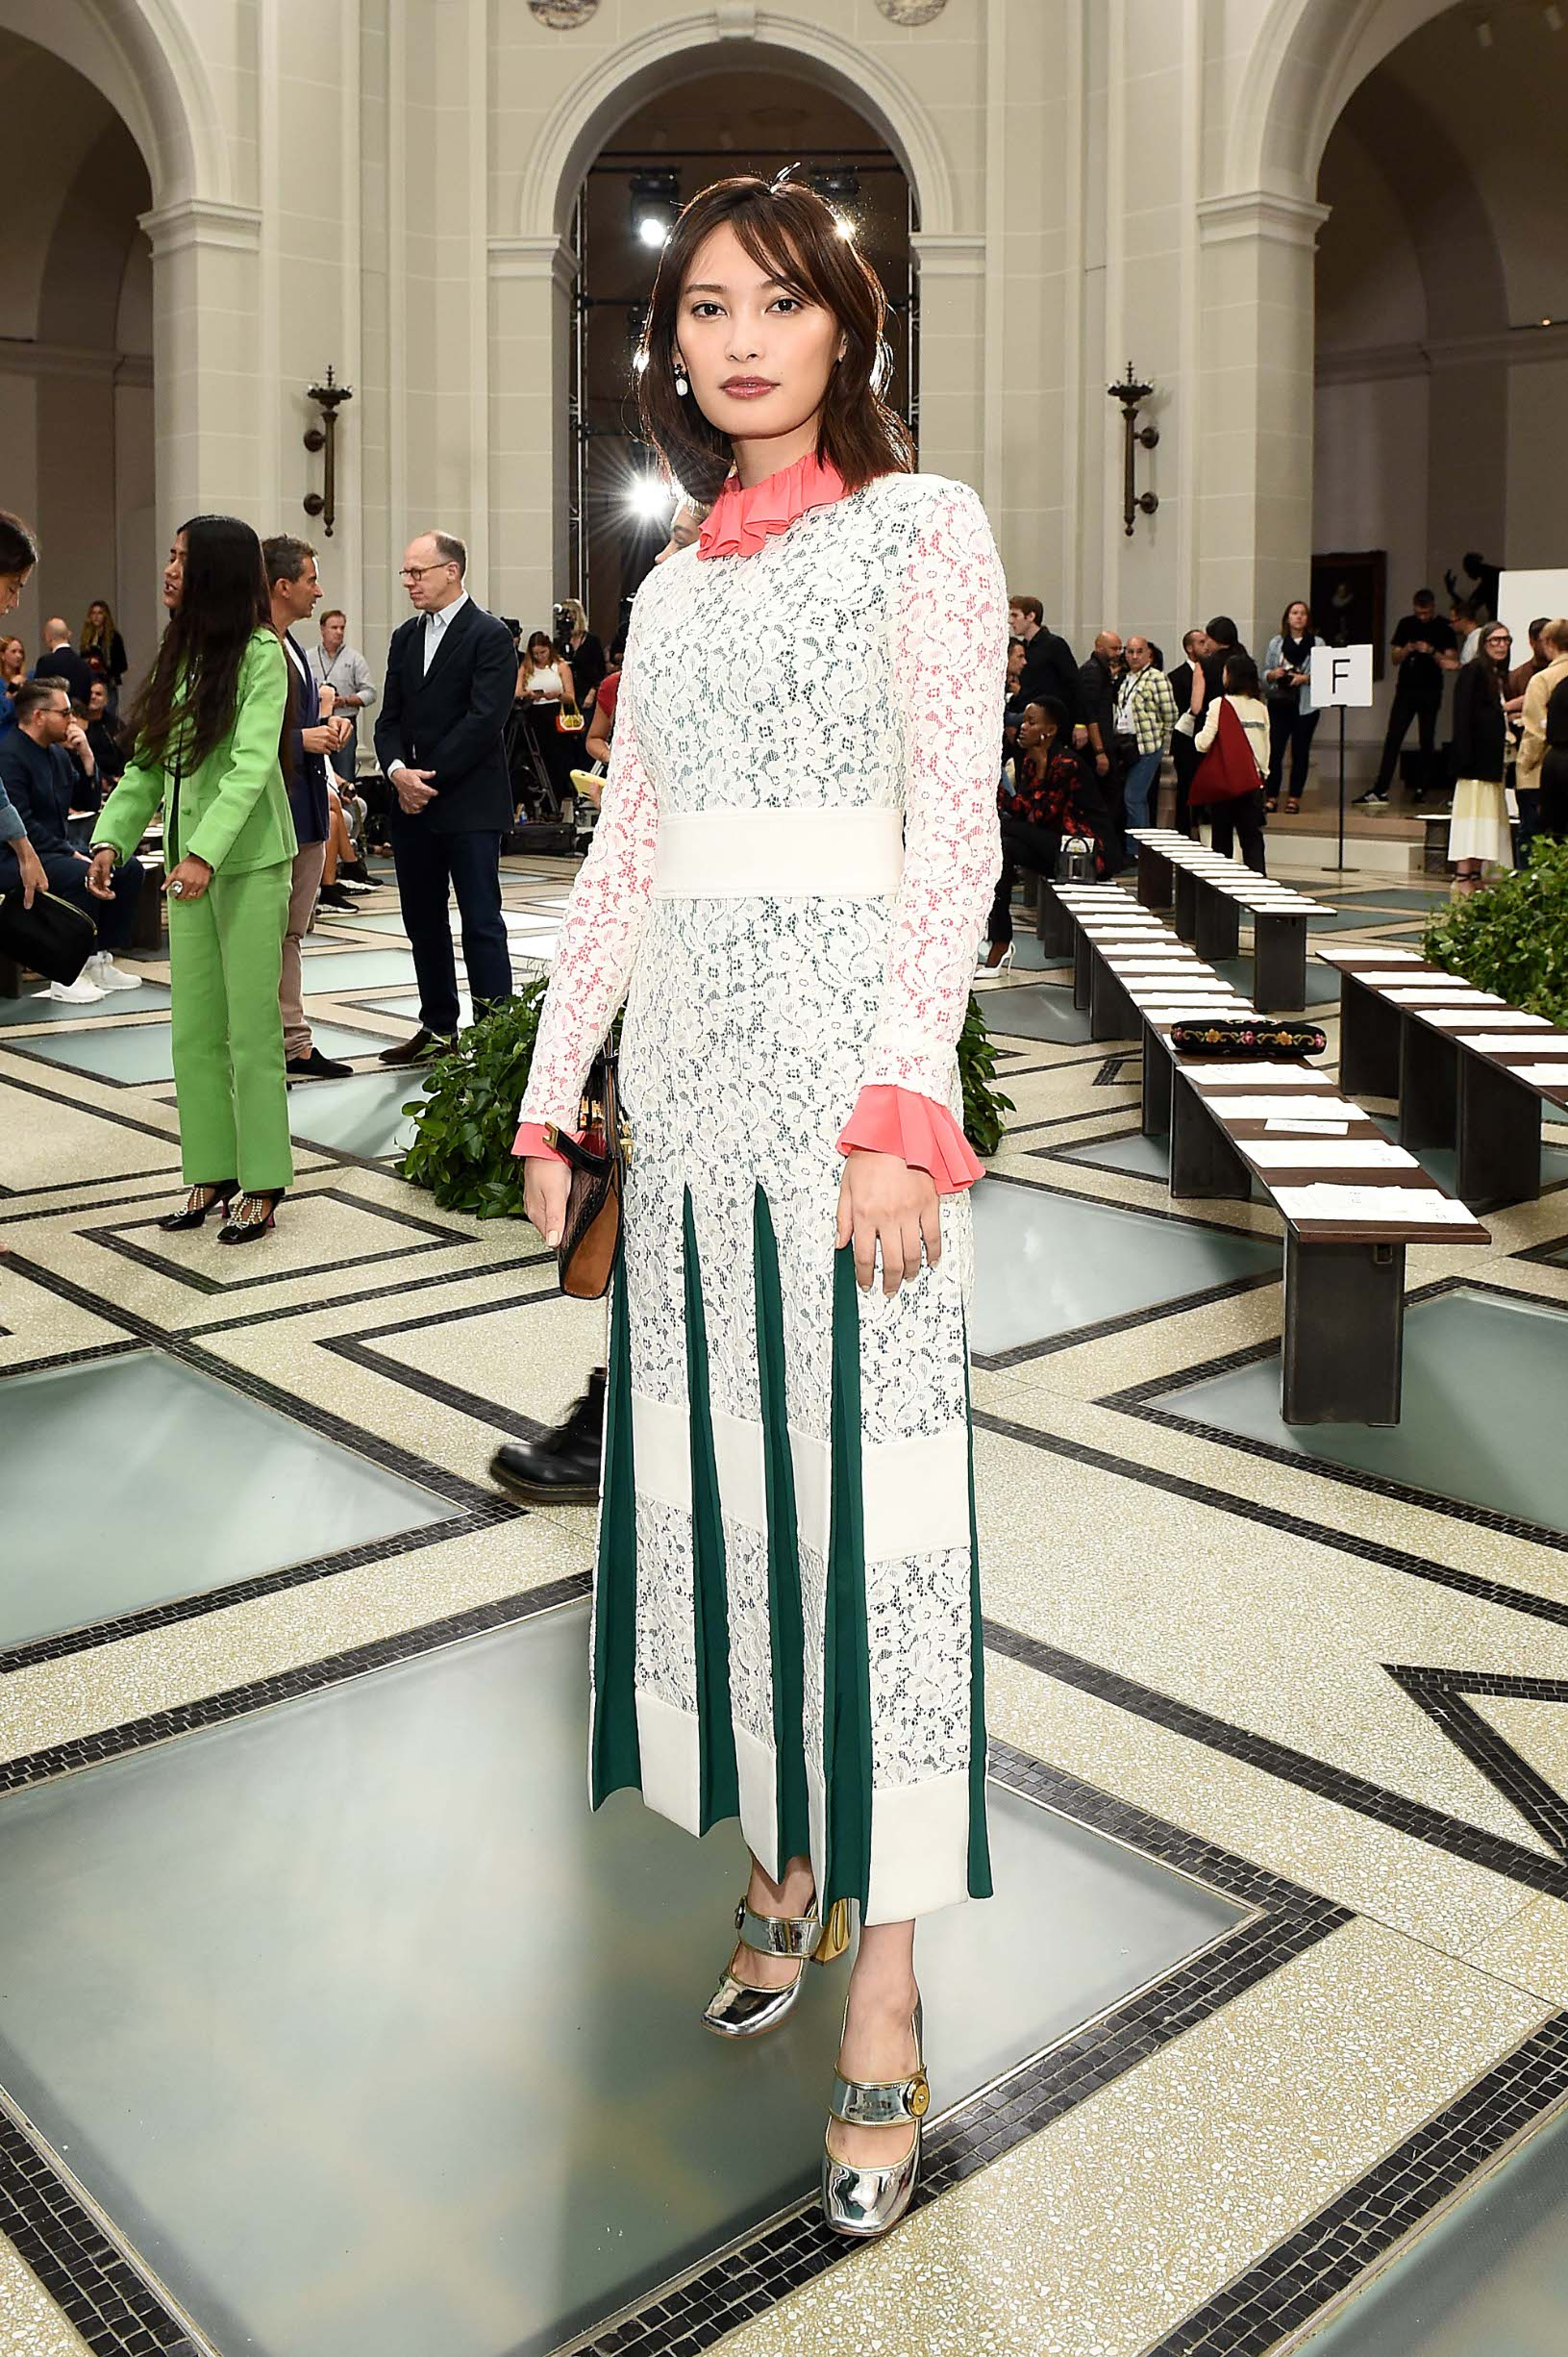 BROOKLYN, NEW YORK - SEPTEMBER 08: Aya Omasa attends Tory Burch NYFW SS20 at the Brooklyn Museum on September 08, 2019 in Brooklyn City. (Photo by Ilya S. Savenok/Getty Images for Tory Burch)